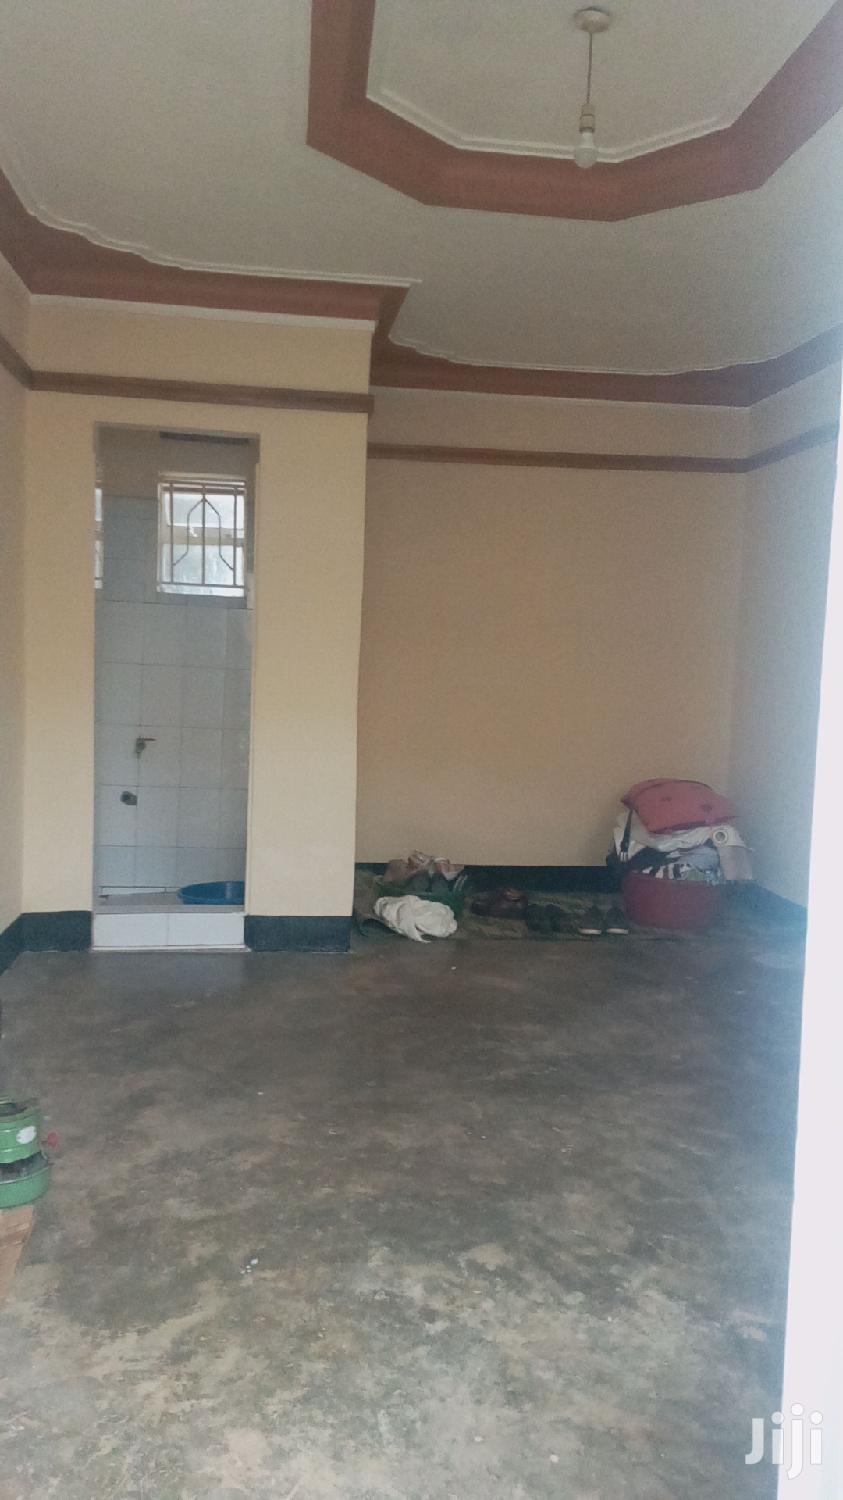 Single Room For Rent In Kitintale Mutungo Road | Houses & Apartments For Rent for sale in Kampala, Central Region, Uganda